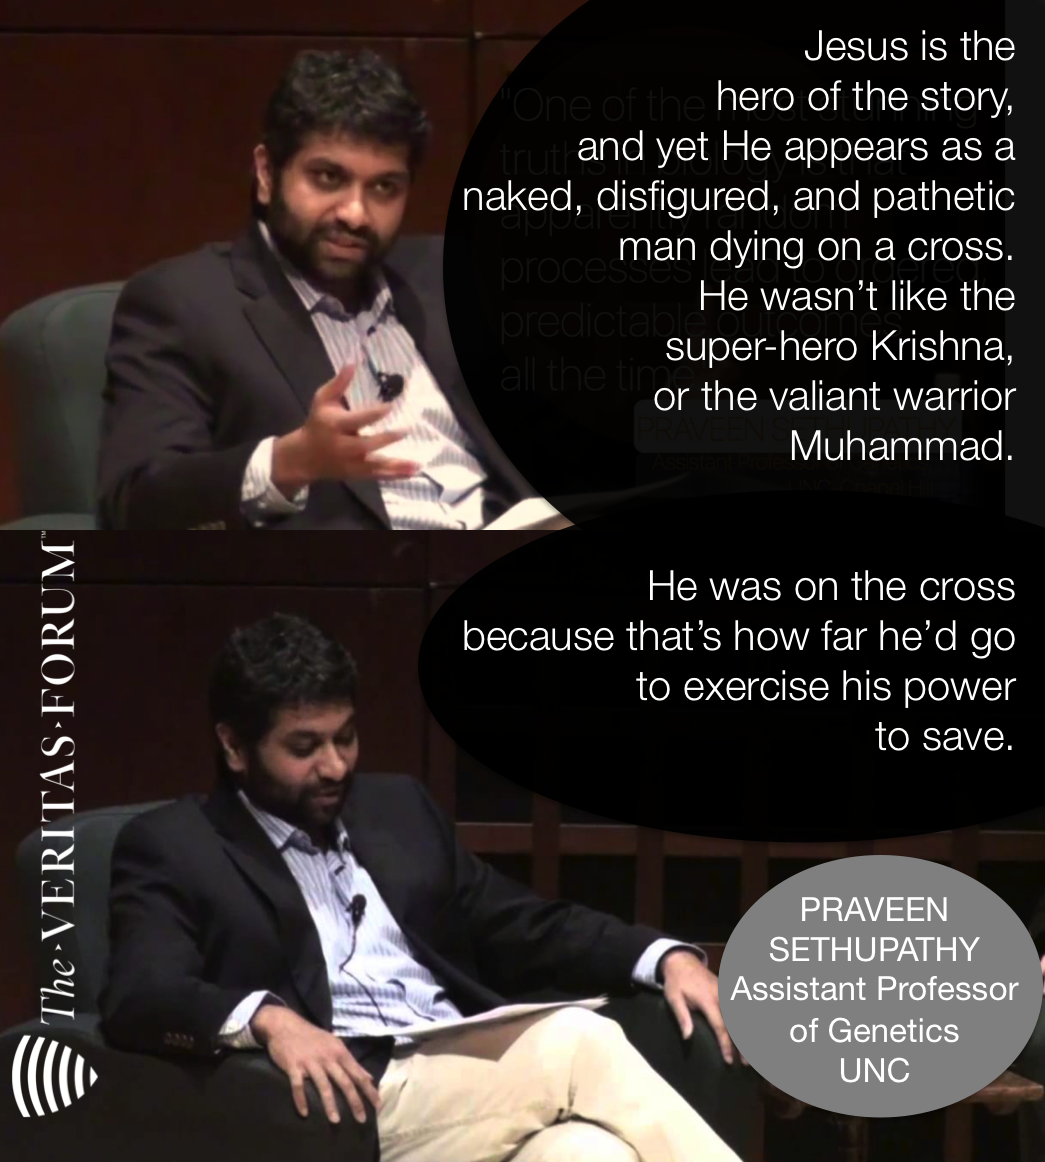 UNC genetics professor, Praveen Sethupathy, on what first attracted him to Jesus. https://t.co/YDTFskxXin